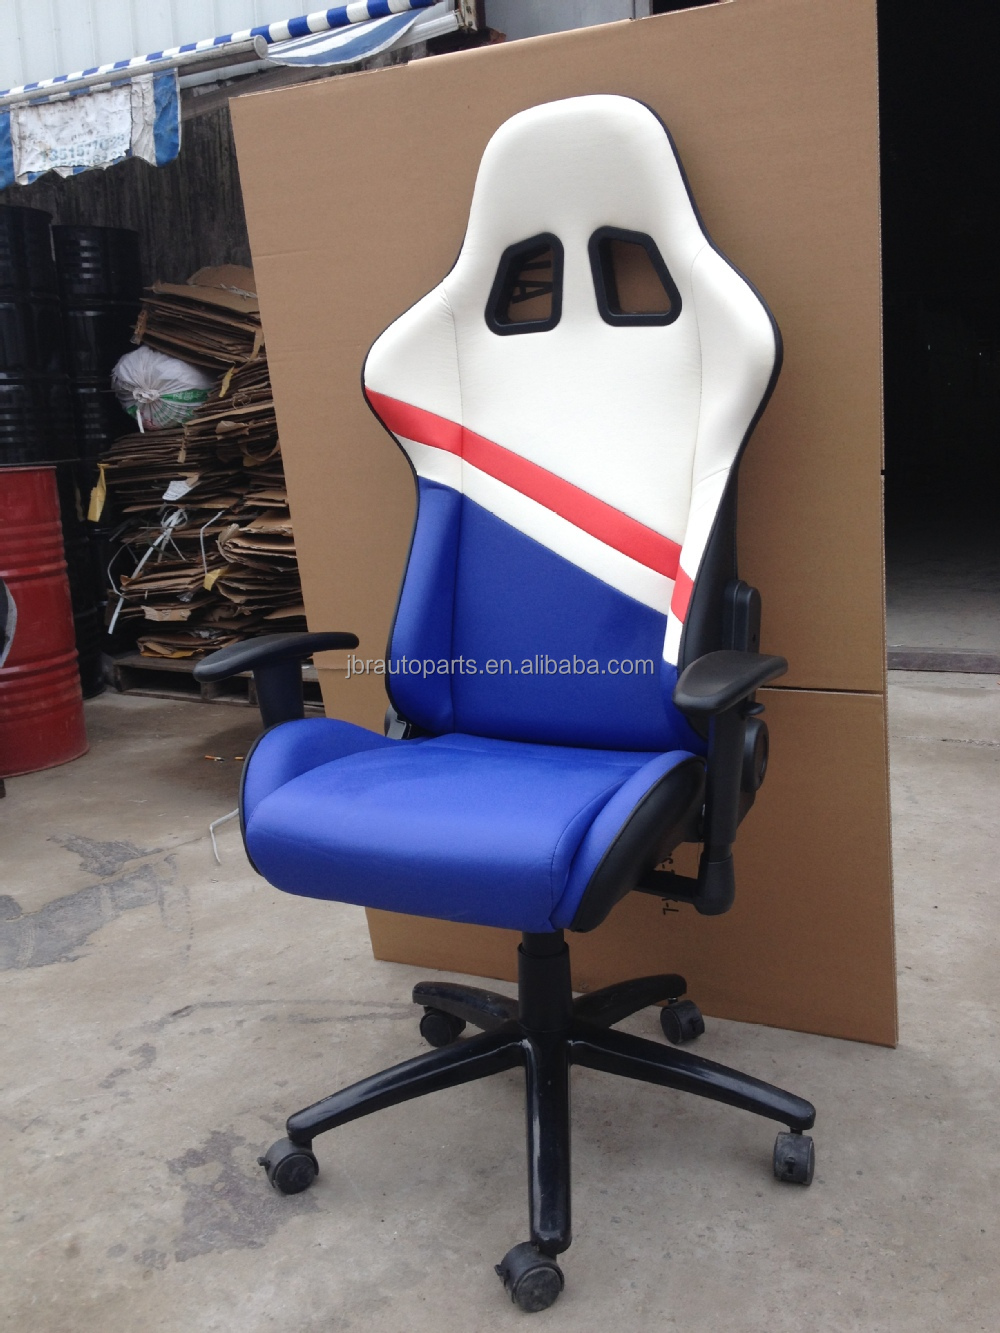 Jbr Adjustable Dx Racing Chair New Racing Office Chair Hot